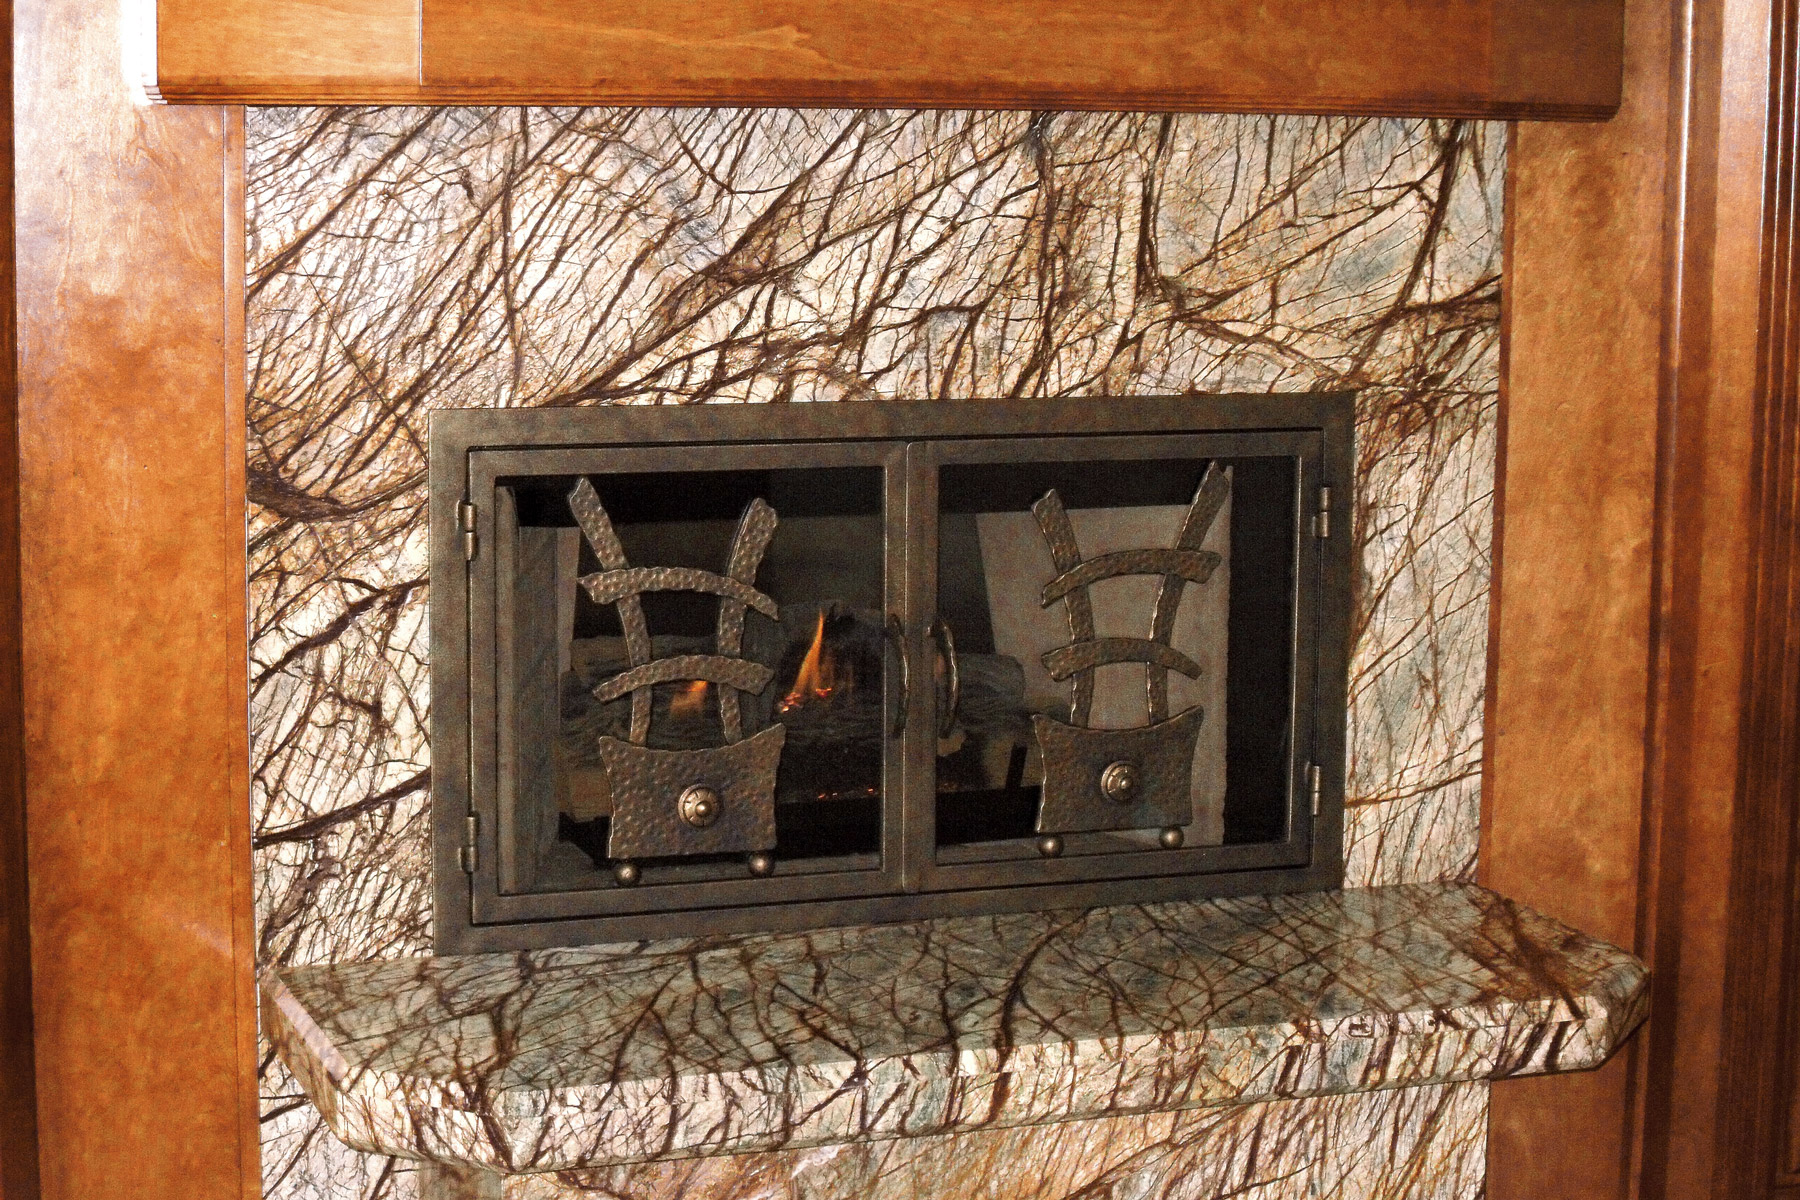 Atwater Fireplace Door